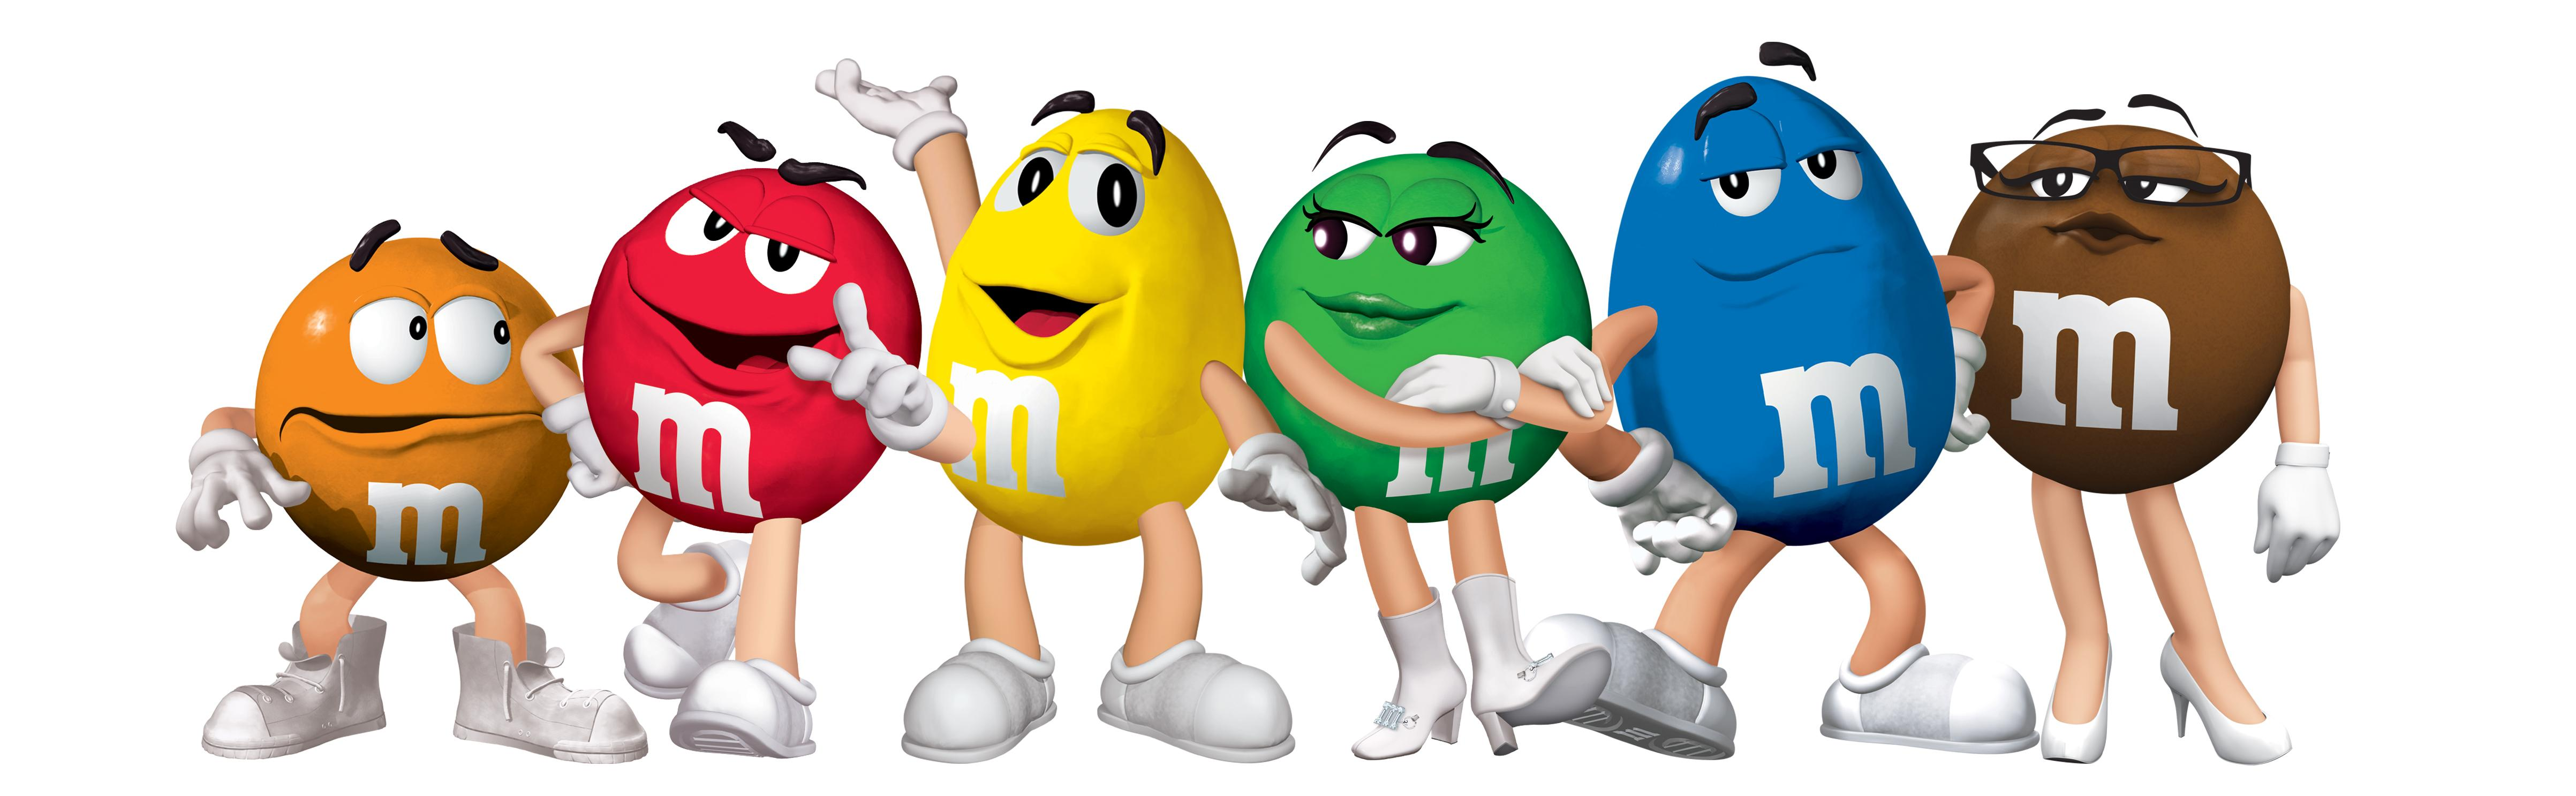 M&m's clipart big bag M'S® m pictures BRINGS STREET